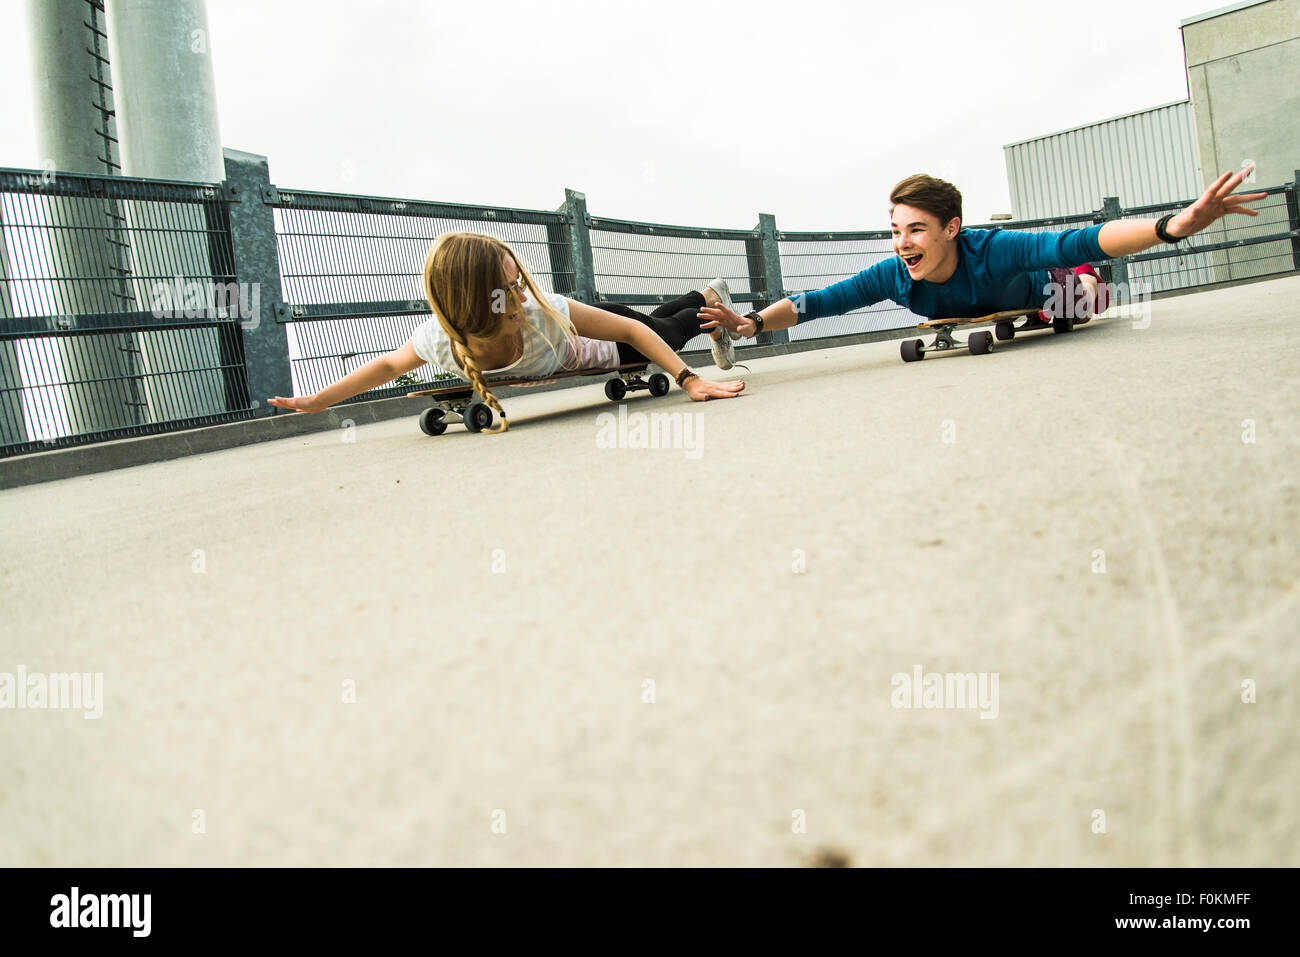 Enthusiastic young couple riding downhill with skateboards - Stock Image